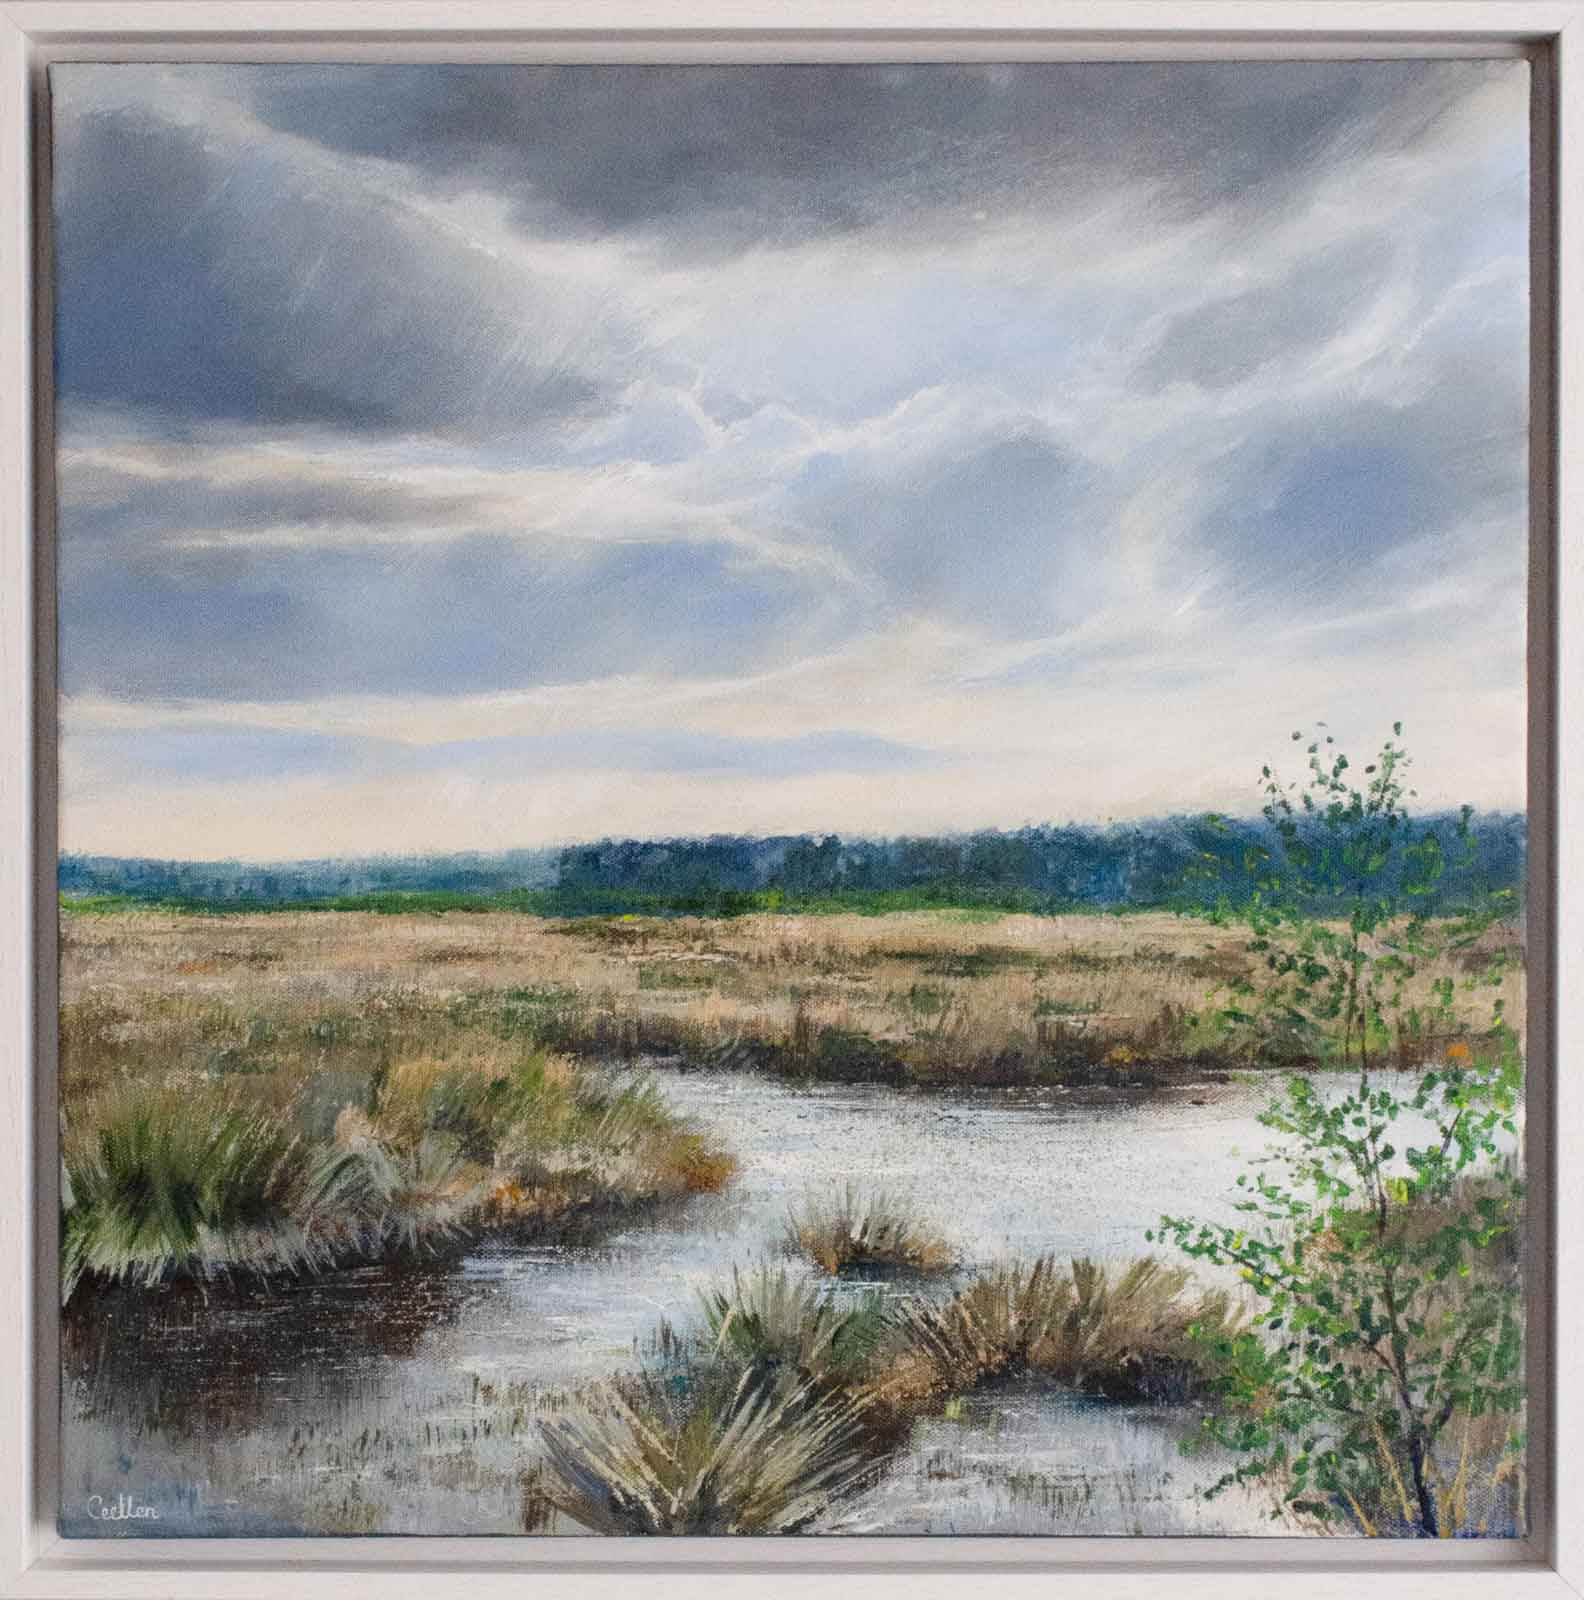 Soft Light, Thursley, Grace Ellen